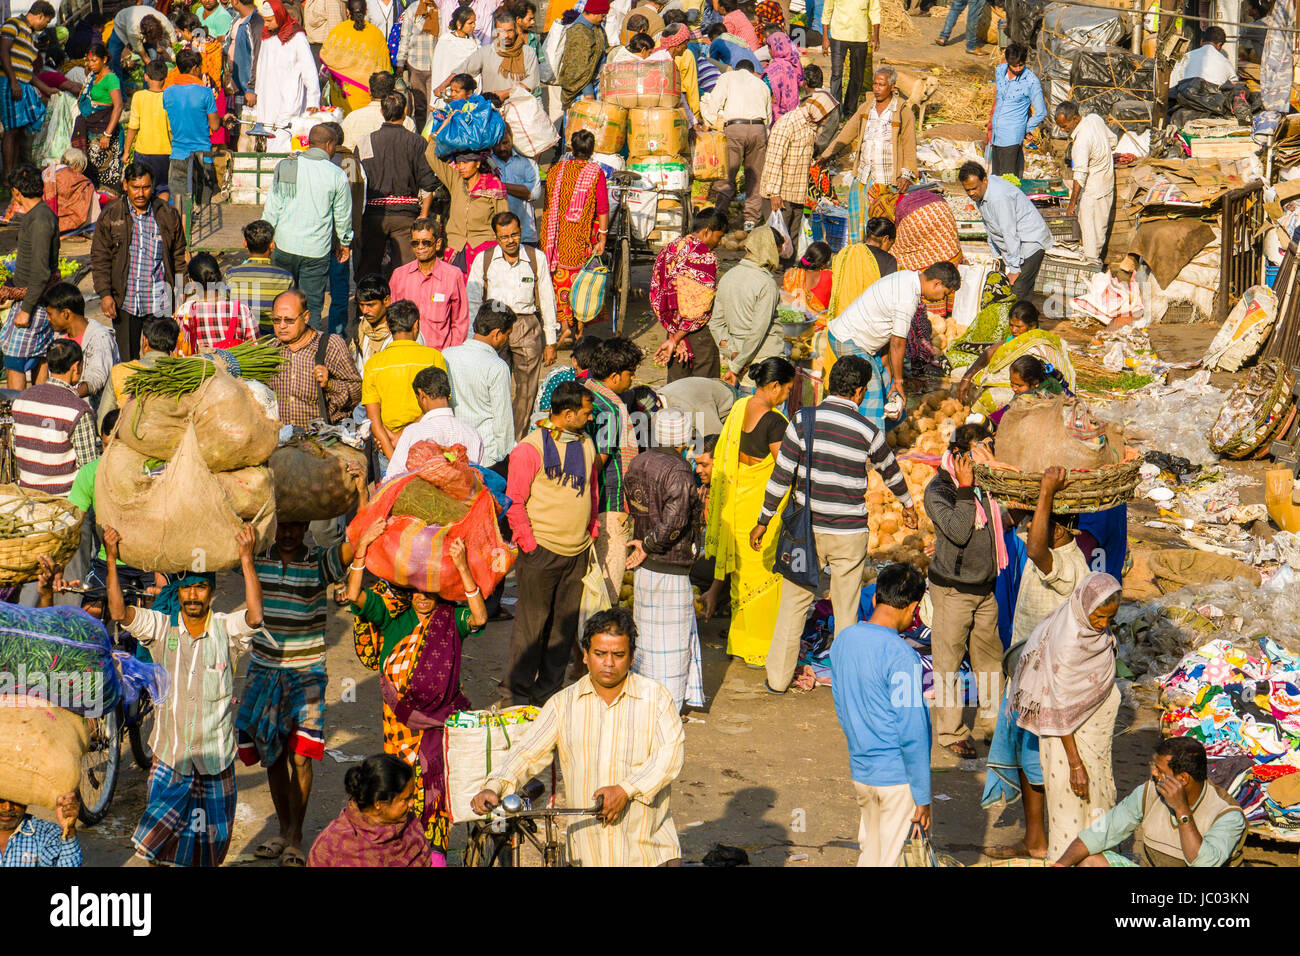 Many people on a busy market street in the suburb Sealdah - Stock Image